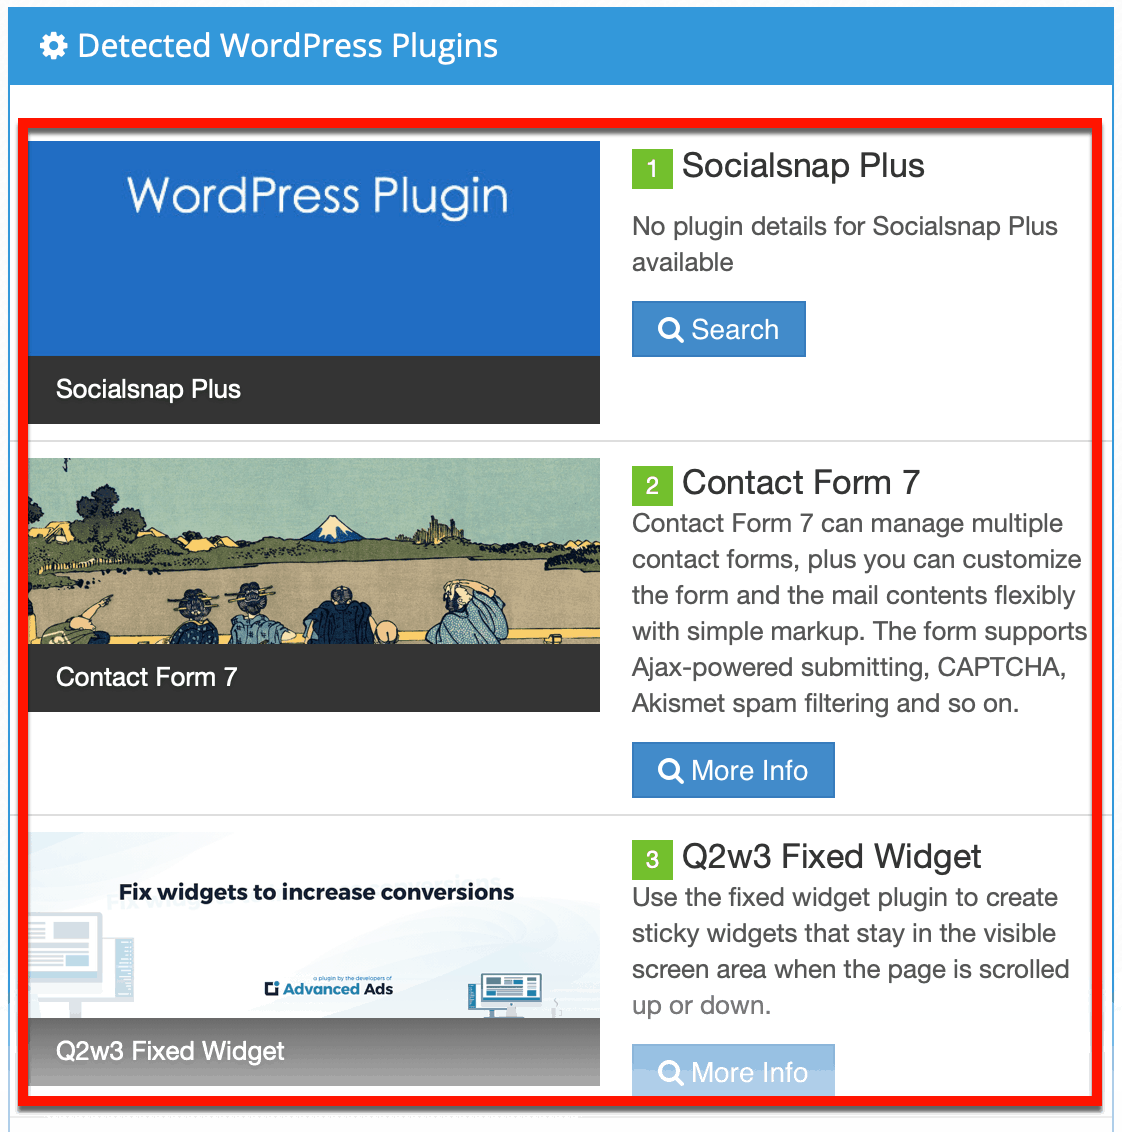 Detected WordPress Plugins for HomeGrounds